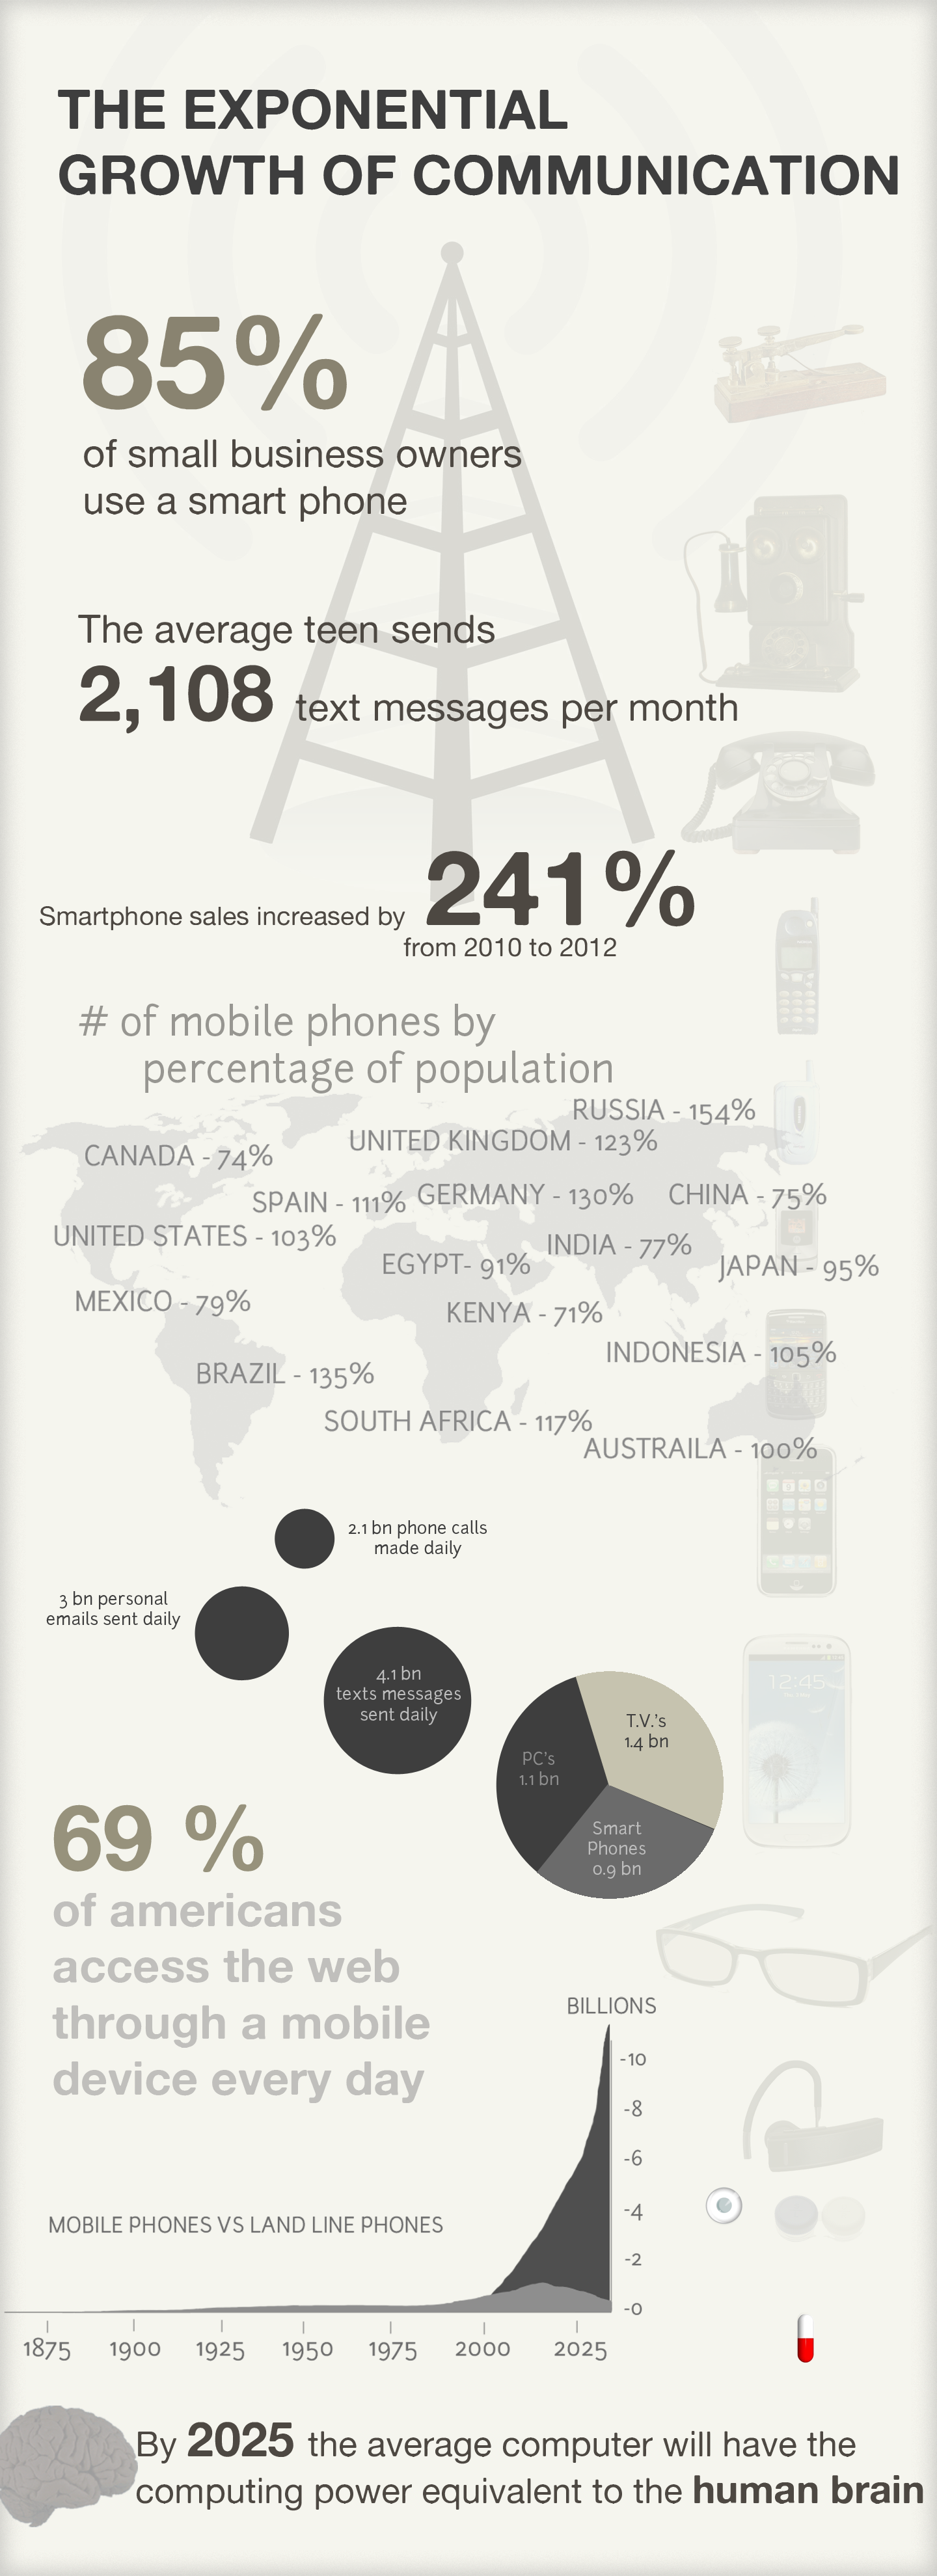 Mobile technology is pushing the exponential growth of communication and computing. This infographic demonstrates the scale of the phenomena.